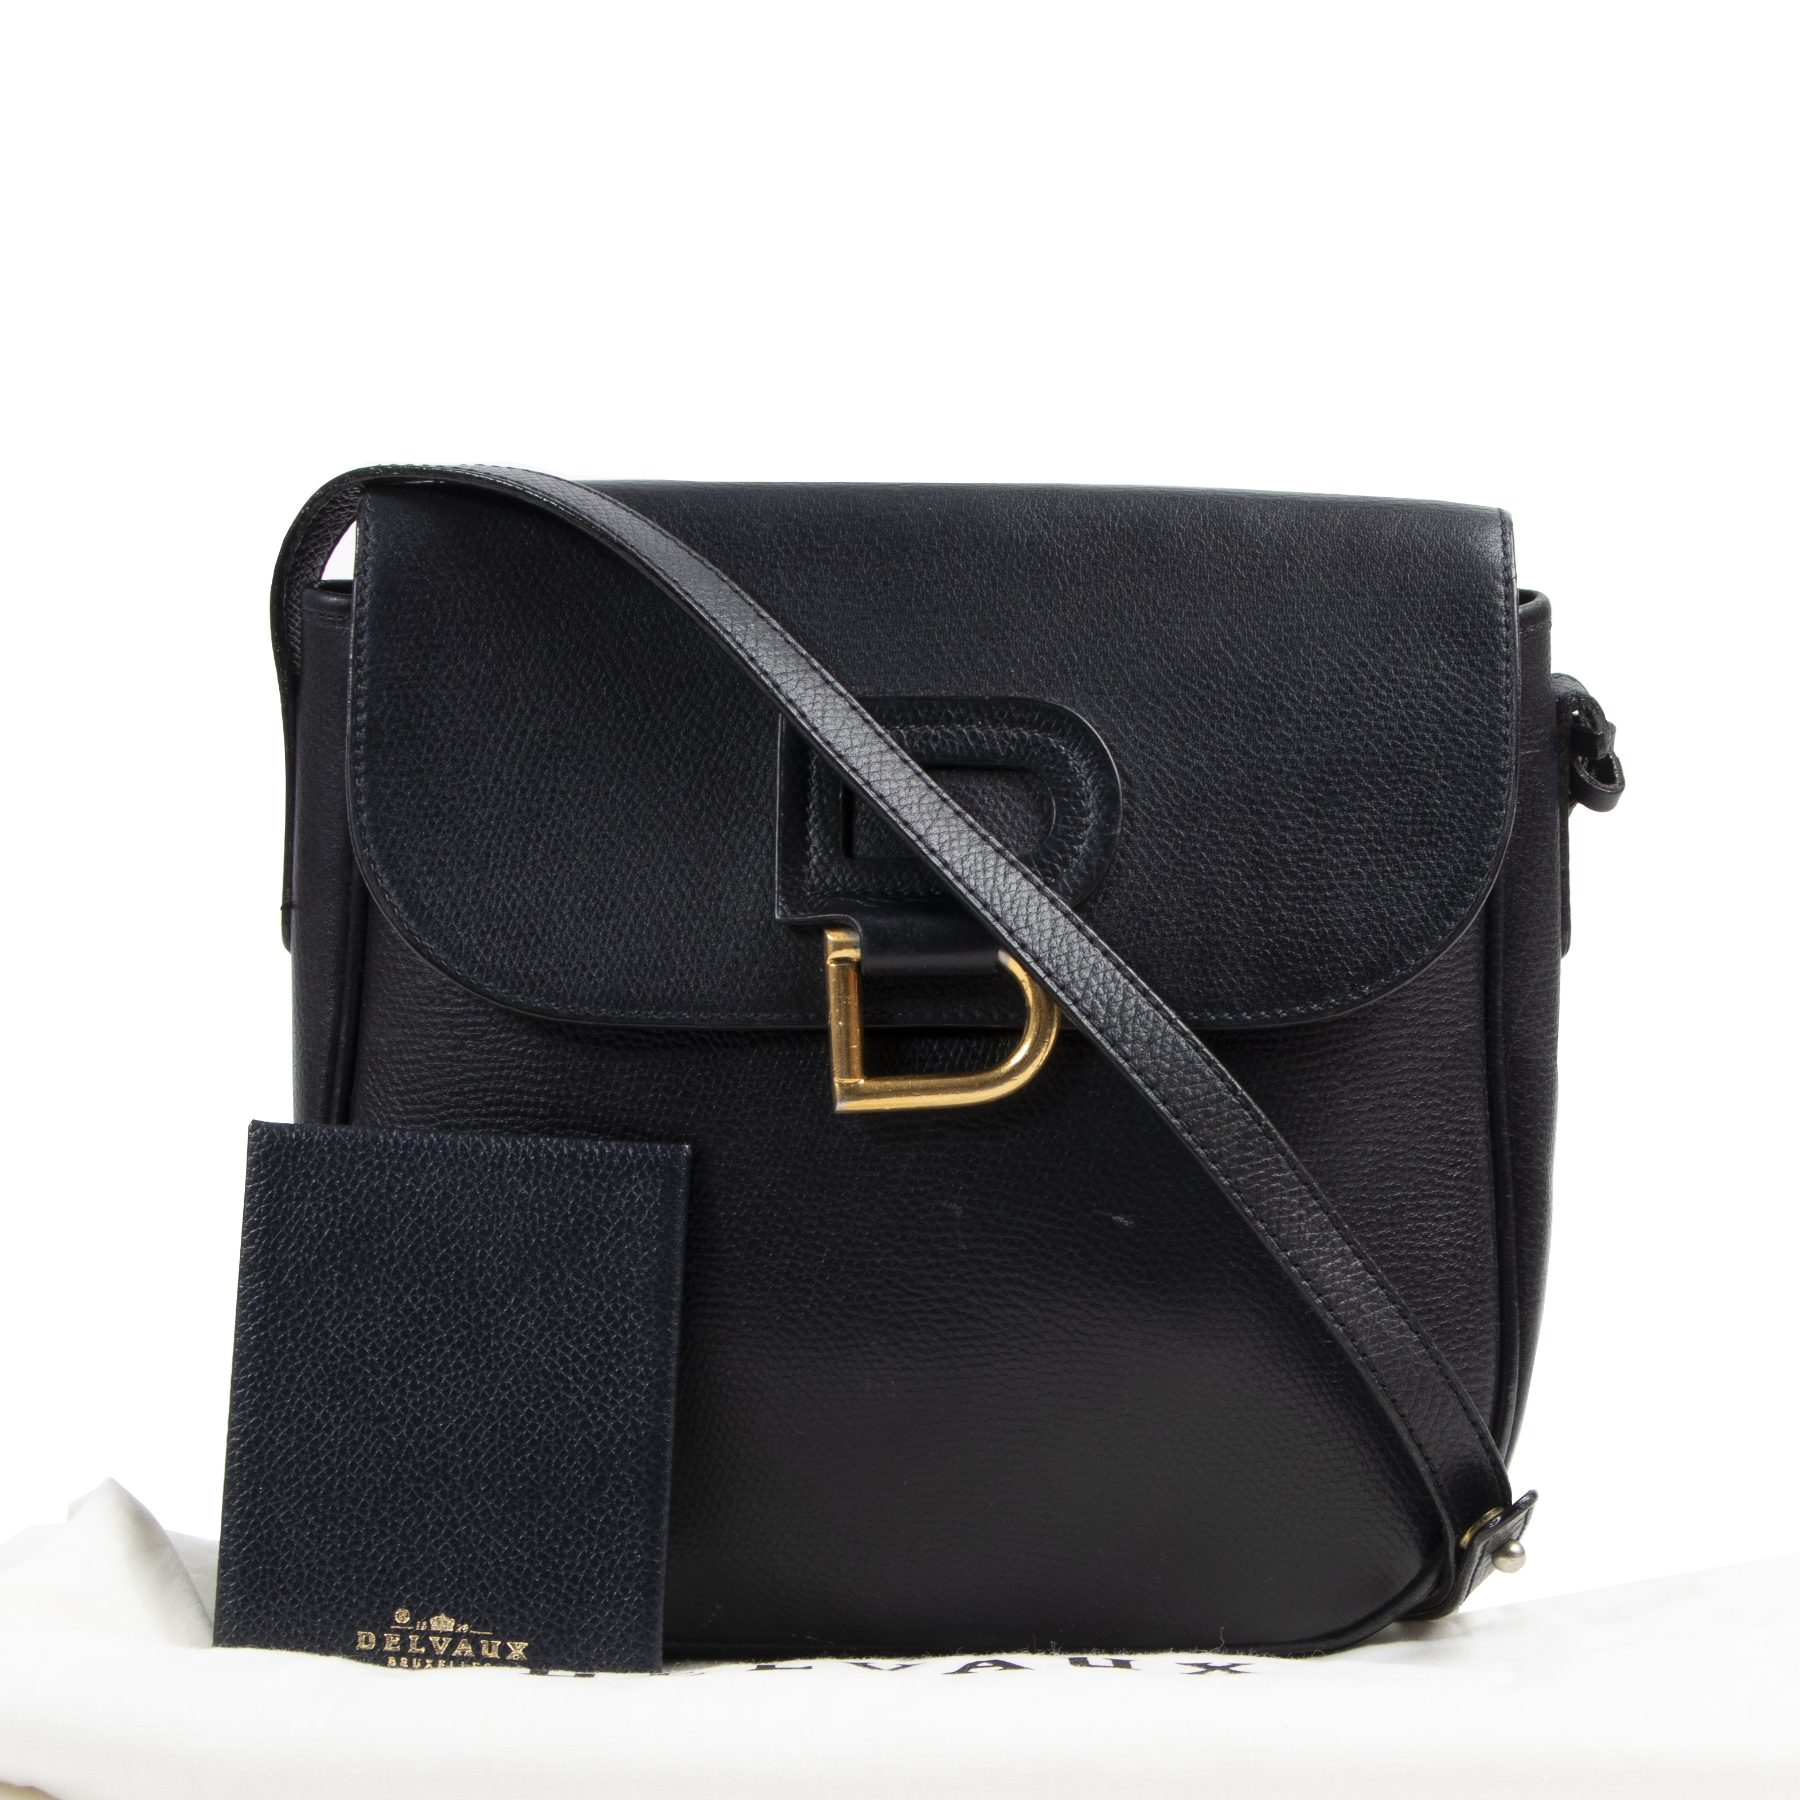 Delvaux Dark Blue Cross-body vintage Bag. Authentieke tweedehands Delvaux handtassen bij LabelLOV Antwerpen. Authentique seconde-main luxury en ligne webshop LabelLOV. Authentic preloved Delvaux handbags at LabelLOV Antwerp.